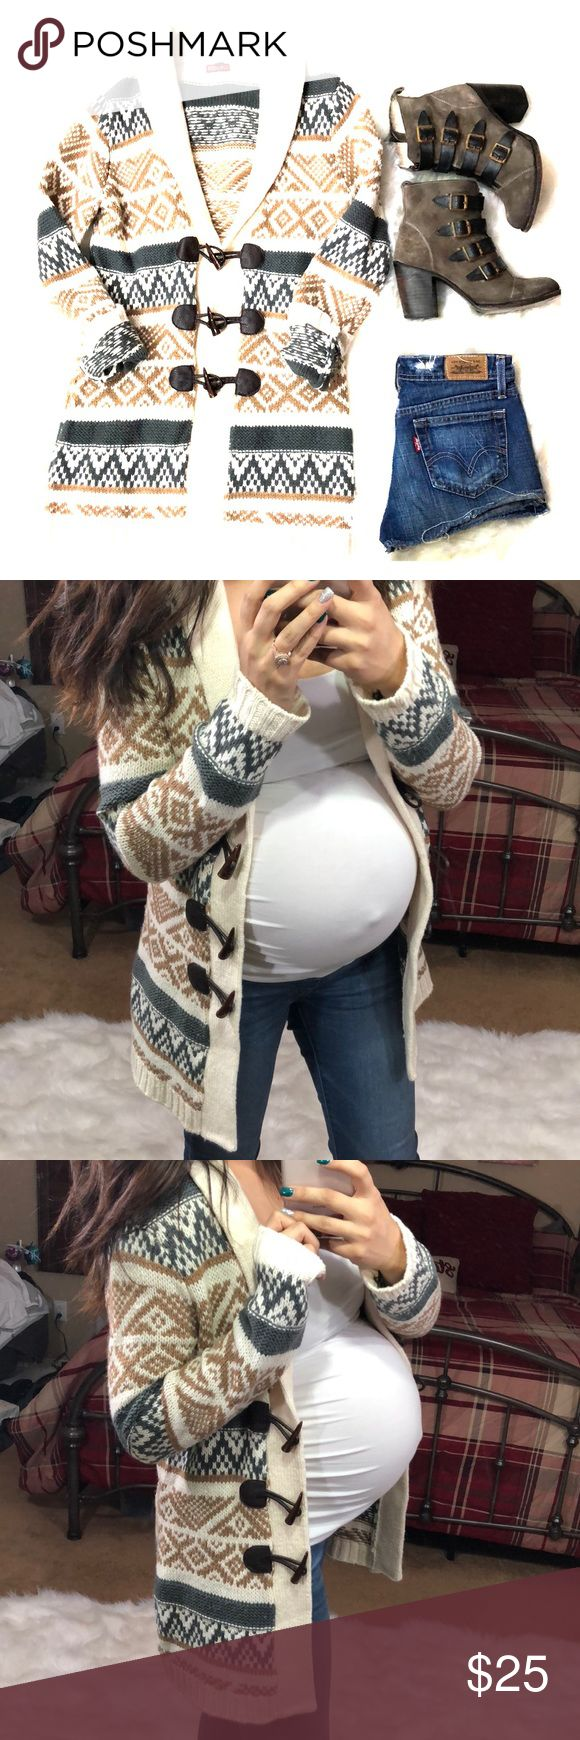 Merona tribal print cardigan Euc size small. Can be worn with anything. Worn during pregnancy. Bundle and save on shipping as I discount bundles Merona Sweaters Cardigans